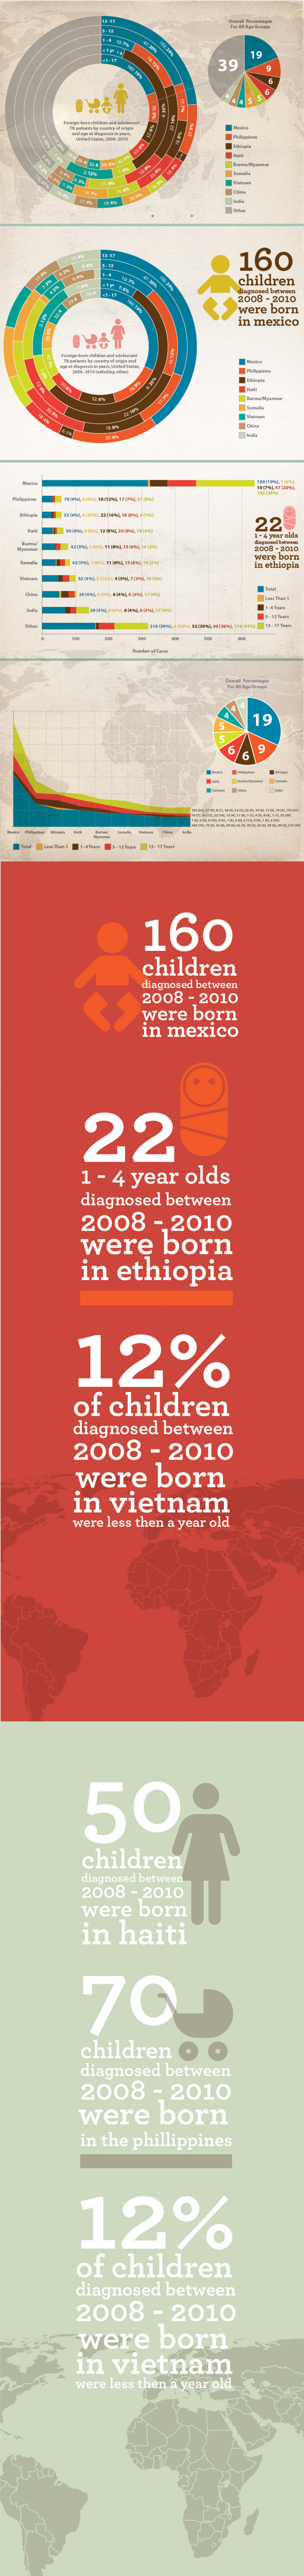 Childhood Tuberculosis Infographic